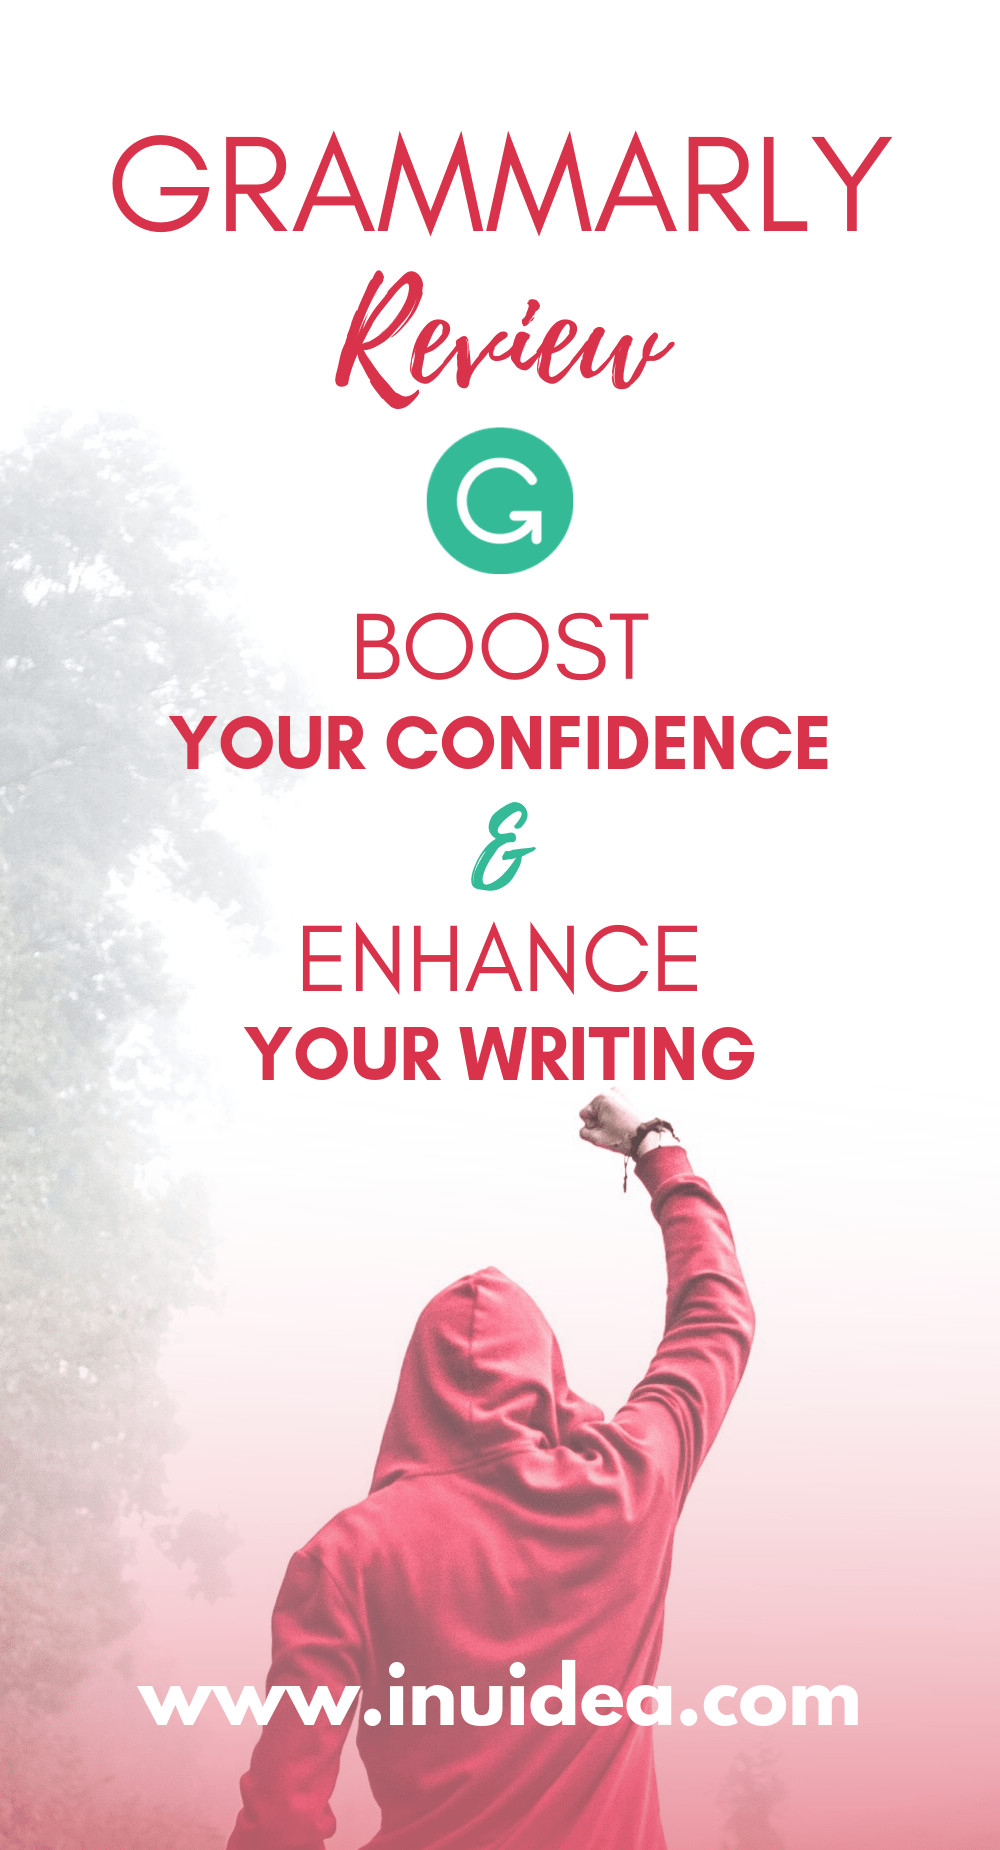 Proofreading Software Grammarly Coupons Military April